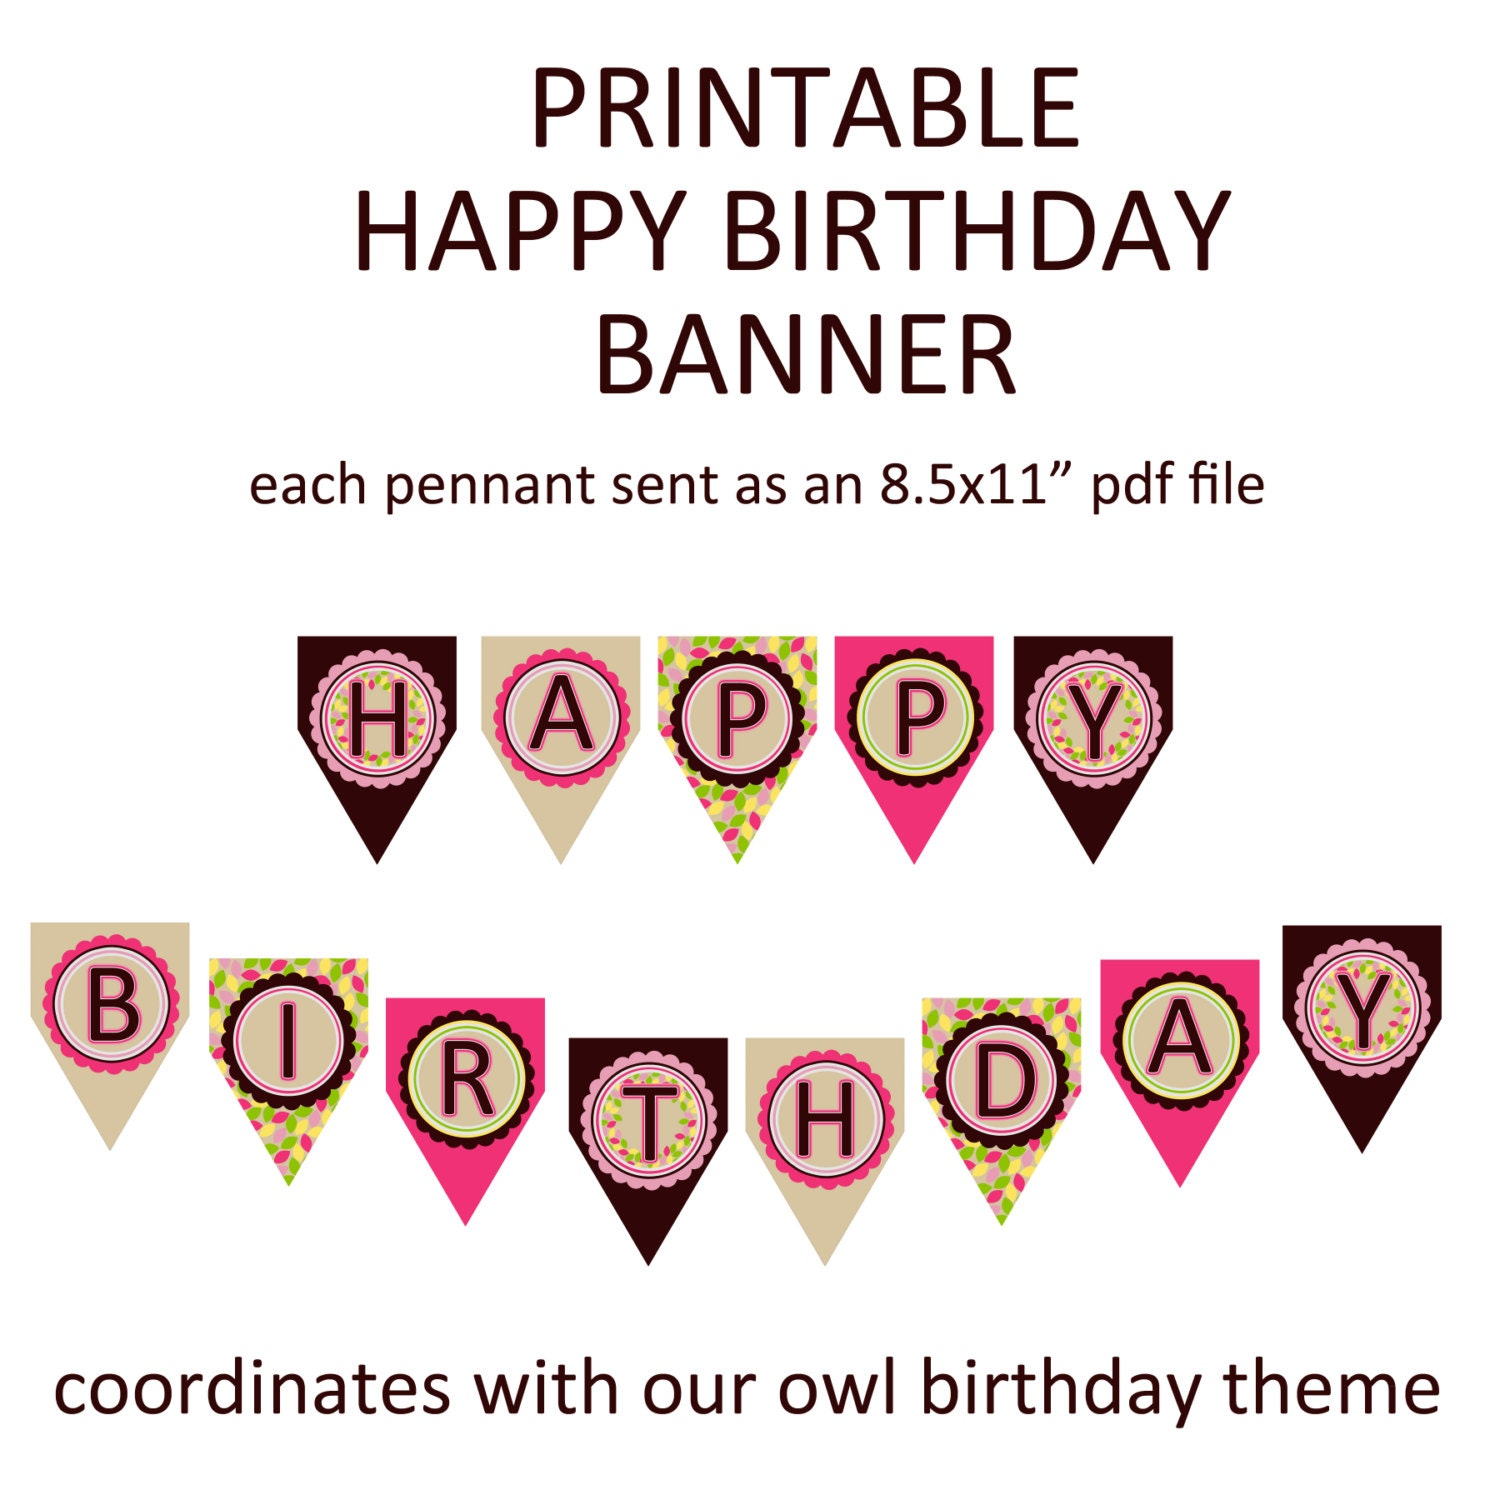 Printable Happy Birthday Banner Coordinates With Our Pink